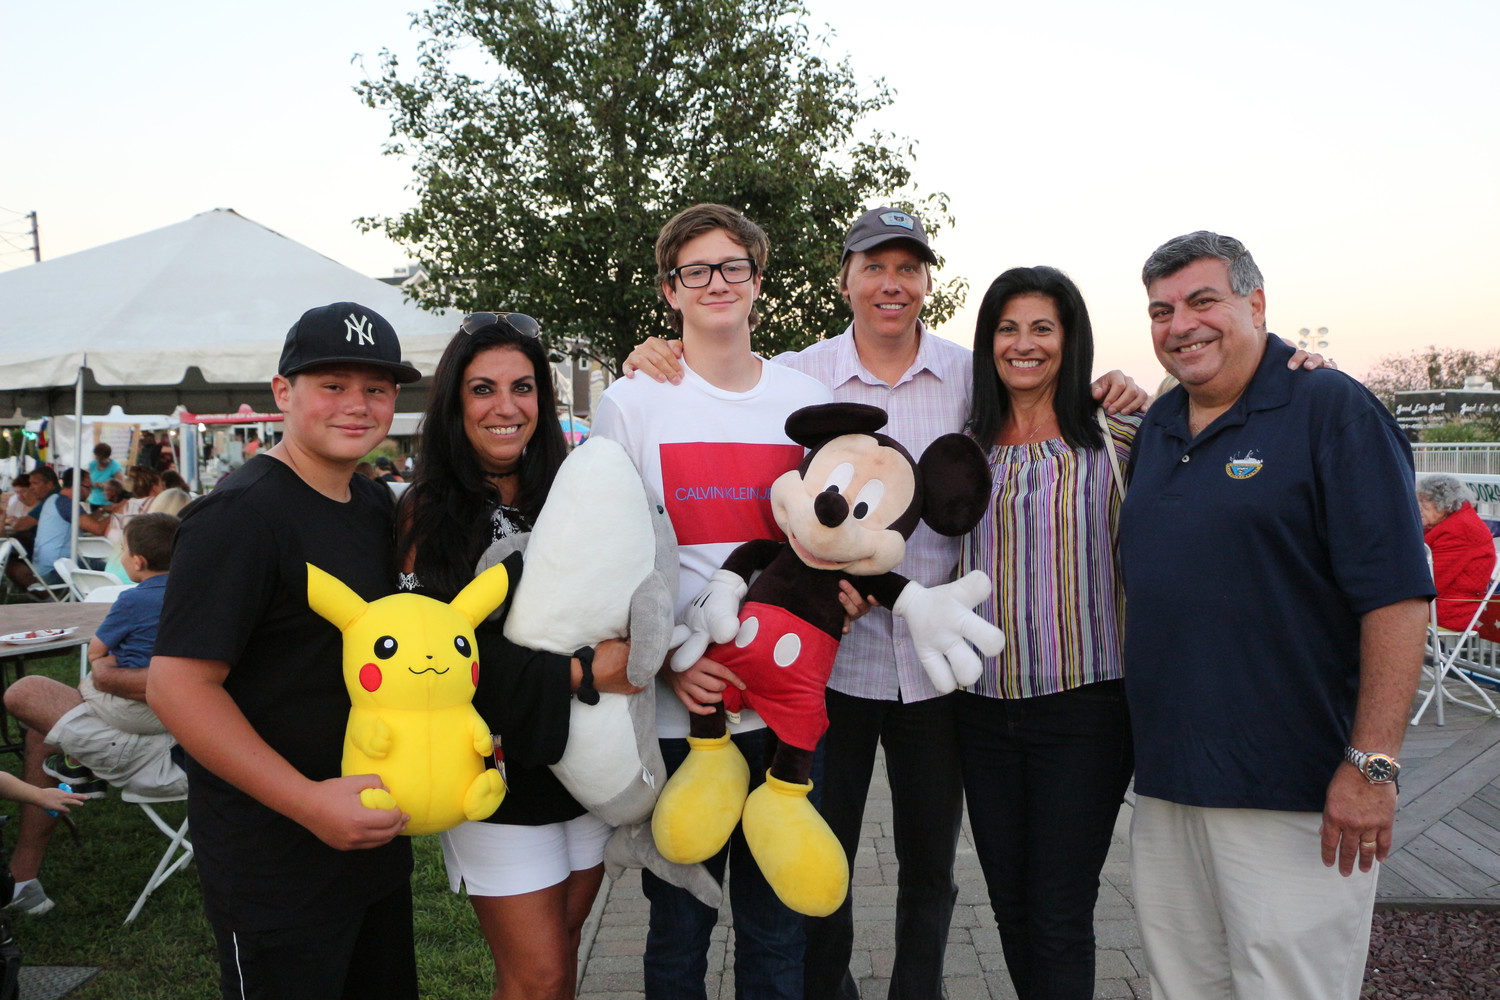 East Rockaway Mayor Bruno Romano, far right, spent time with some members of his family at the Stars & Stripes Festival. From left, Joseph Romano, Lida Gelopter, Cameron Catanzaro and Earnie and Angela Catanzaro.